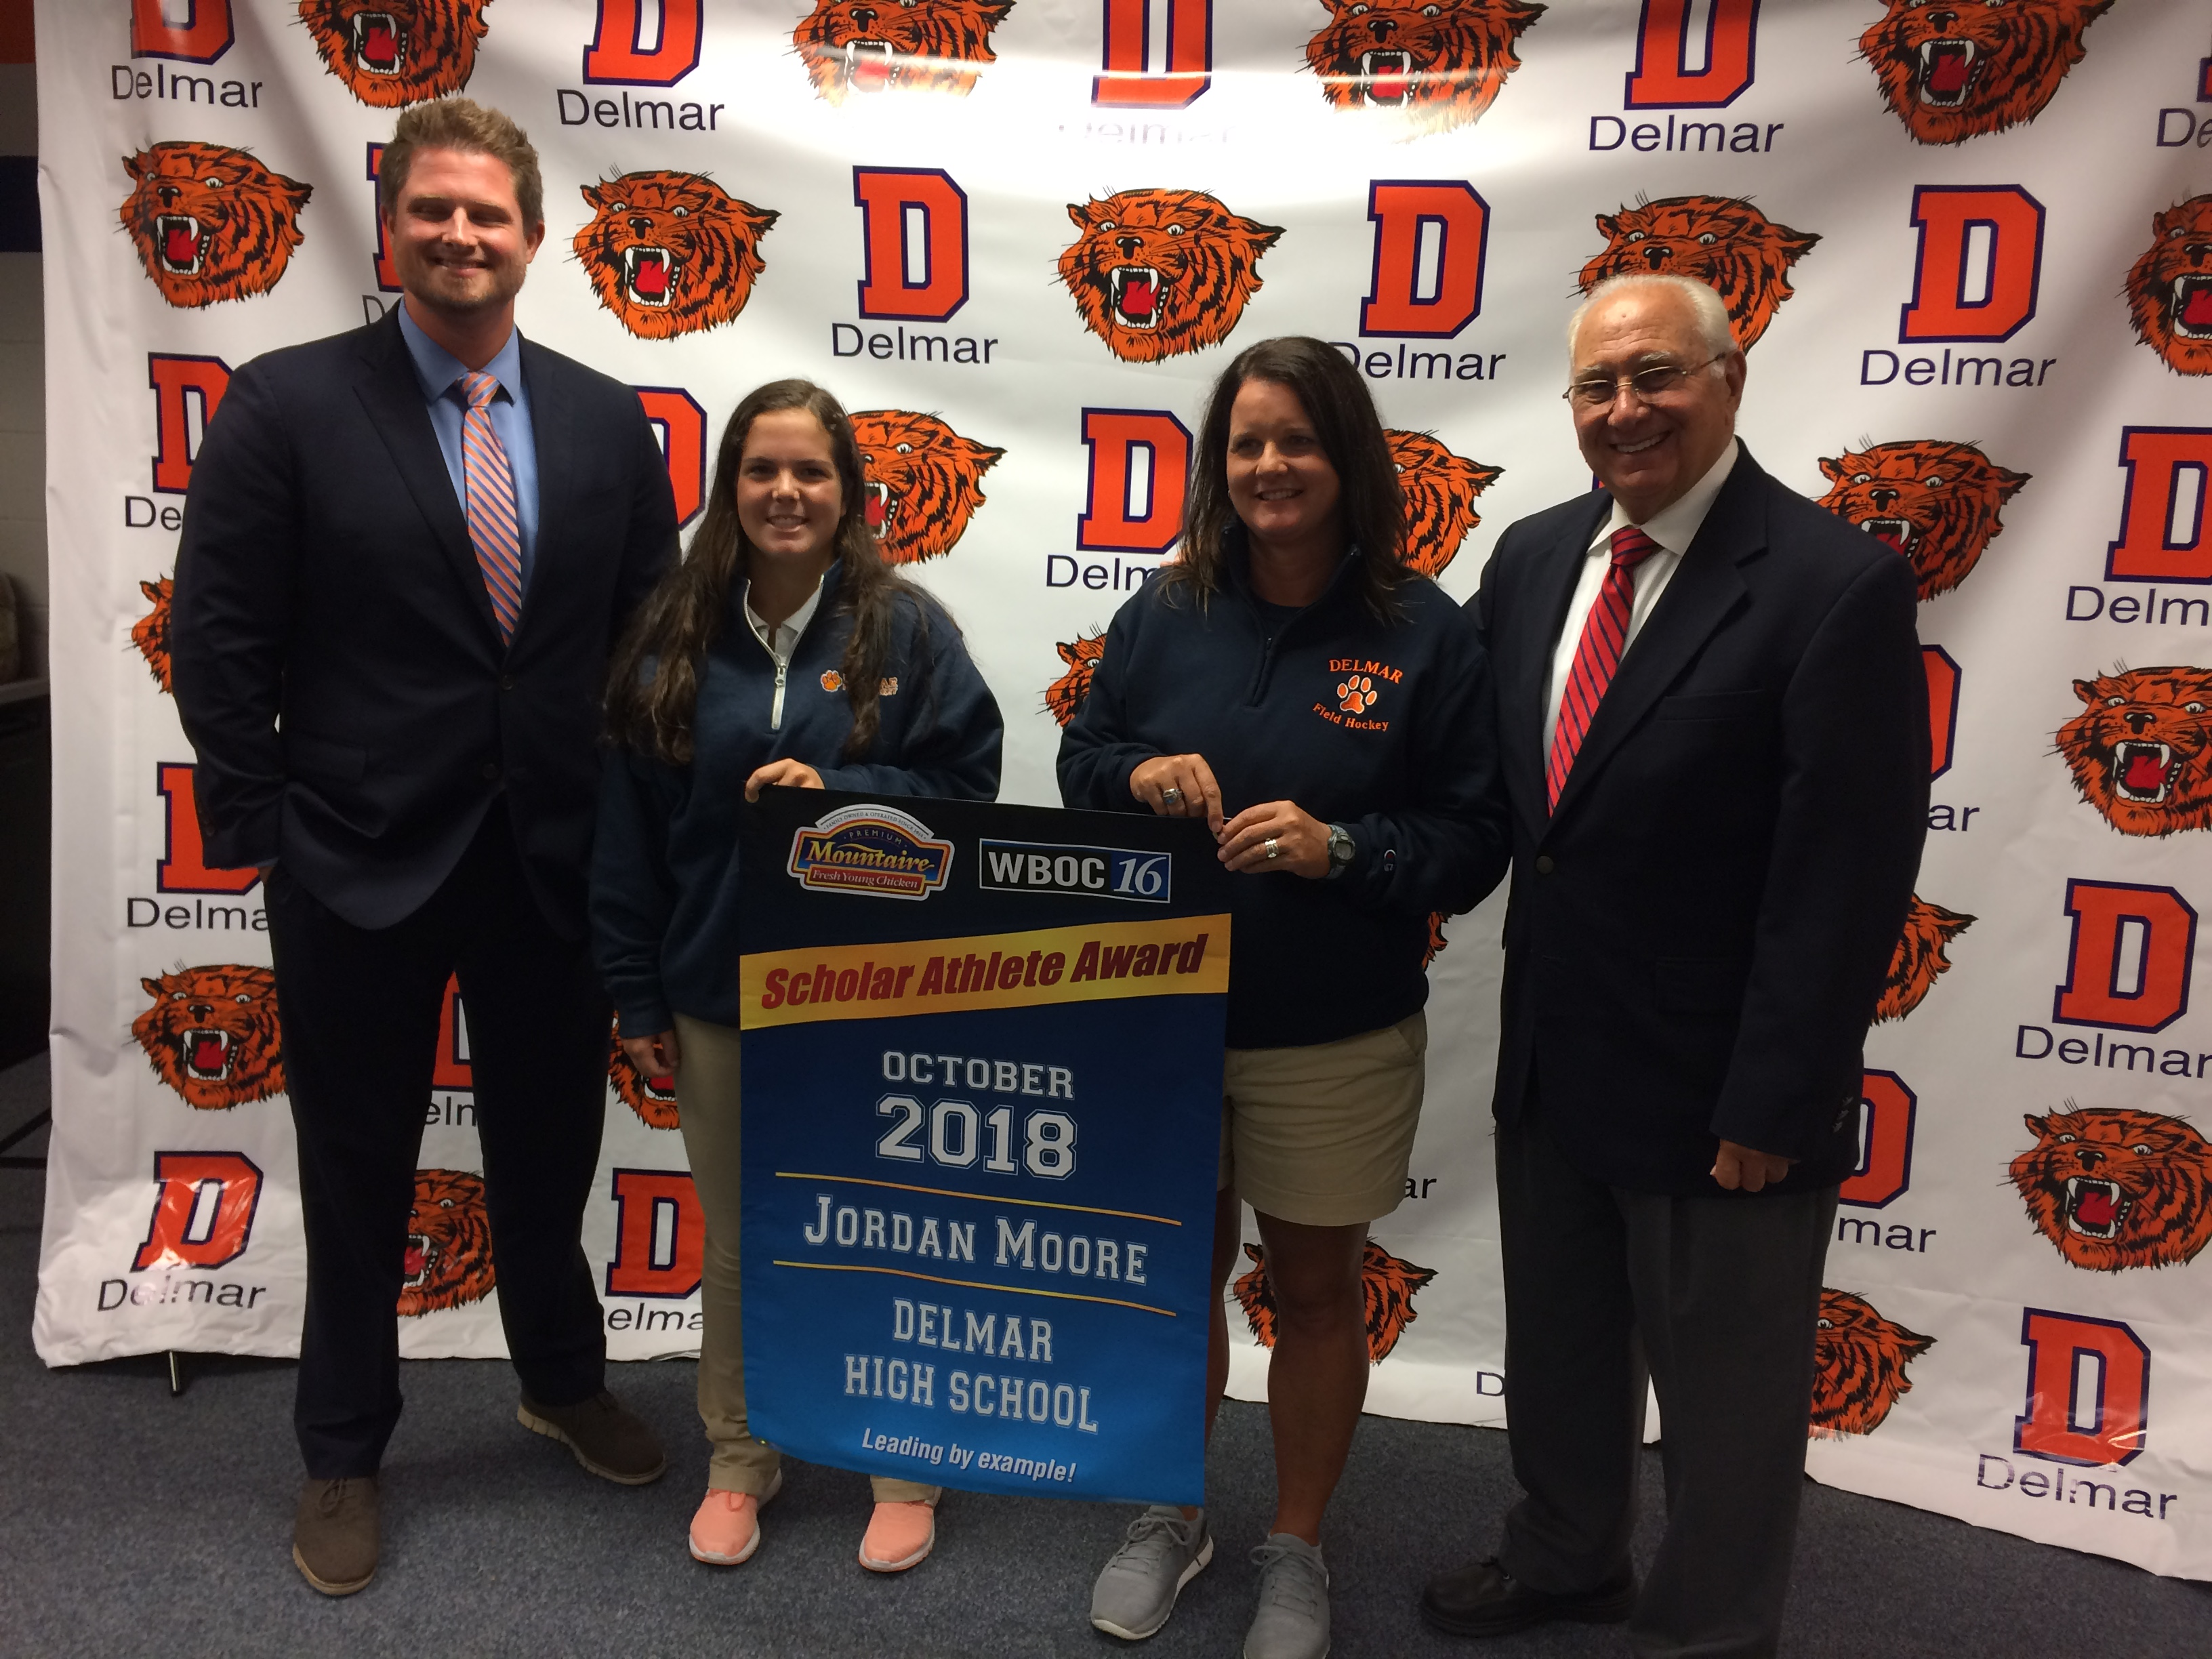 WBOC Mountaire Farms October Scholar Athlete Of The Month – Delmar's Jordan Moore